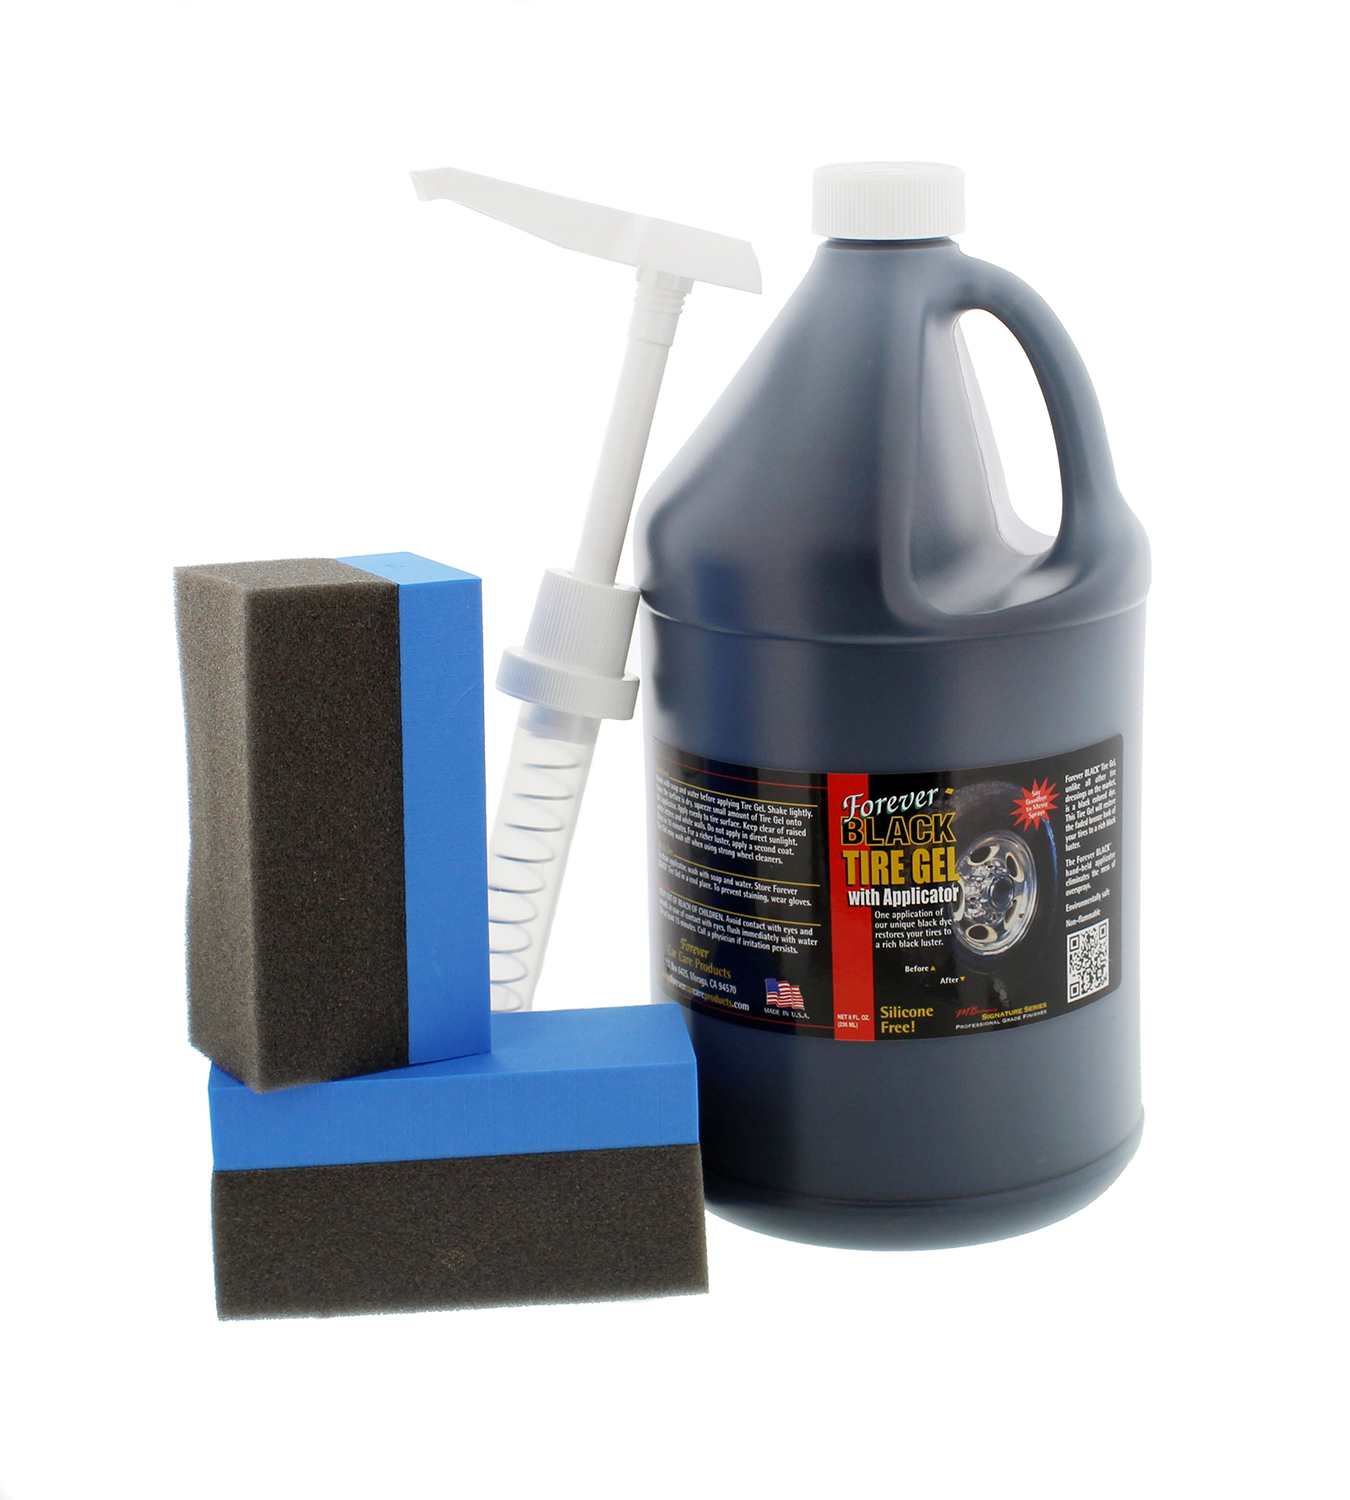 Forever BLACK 810 Tire Gel with Pump & 2 Applicators, 1 Gallon